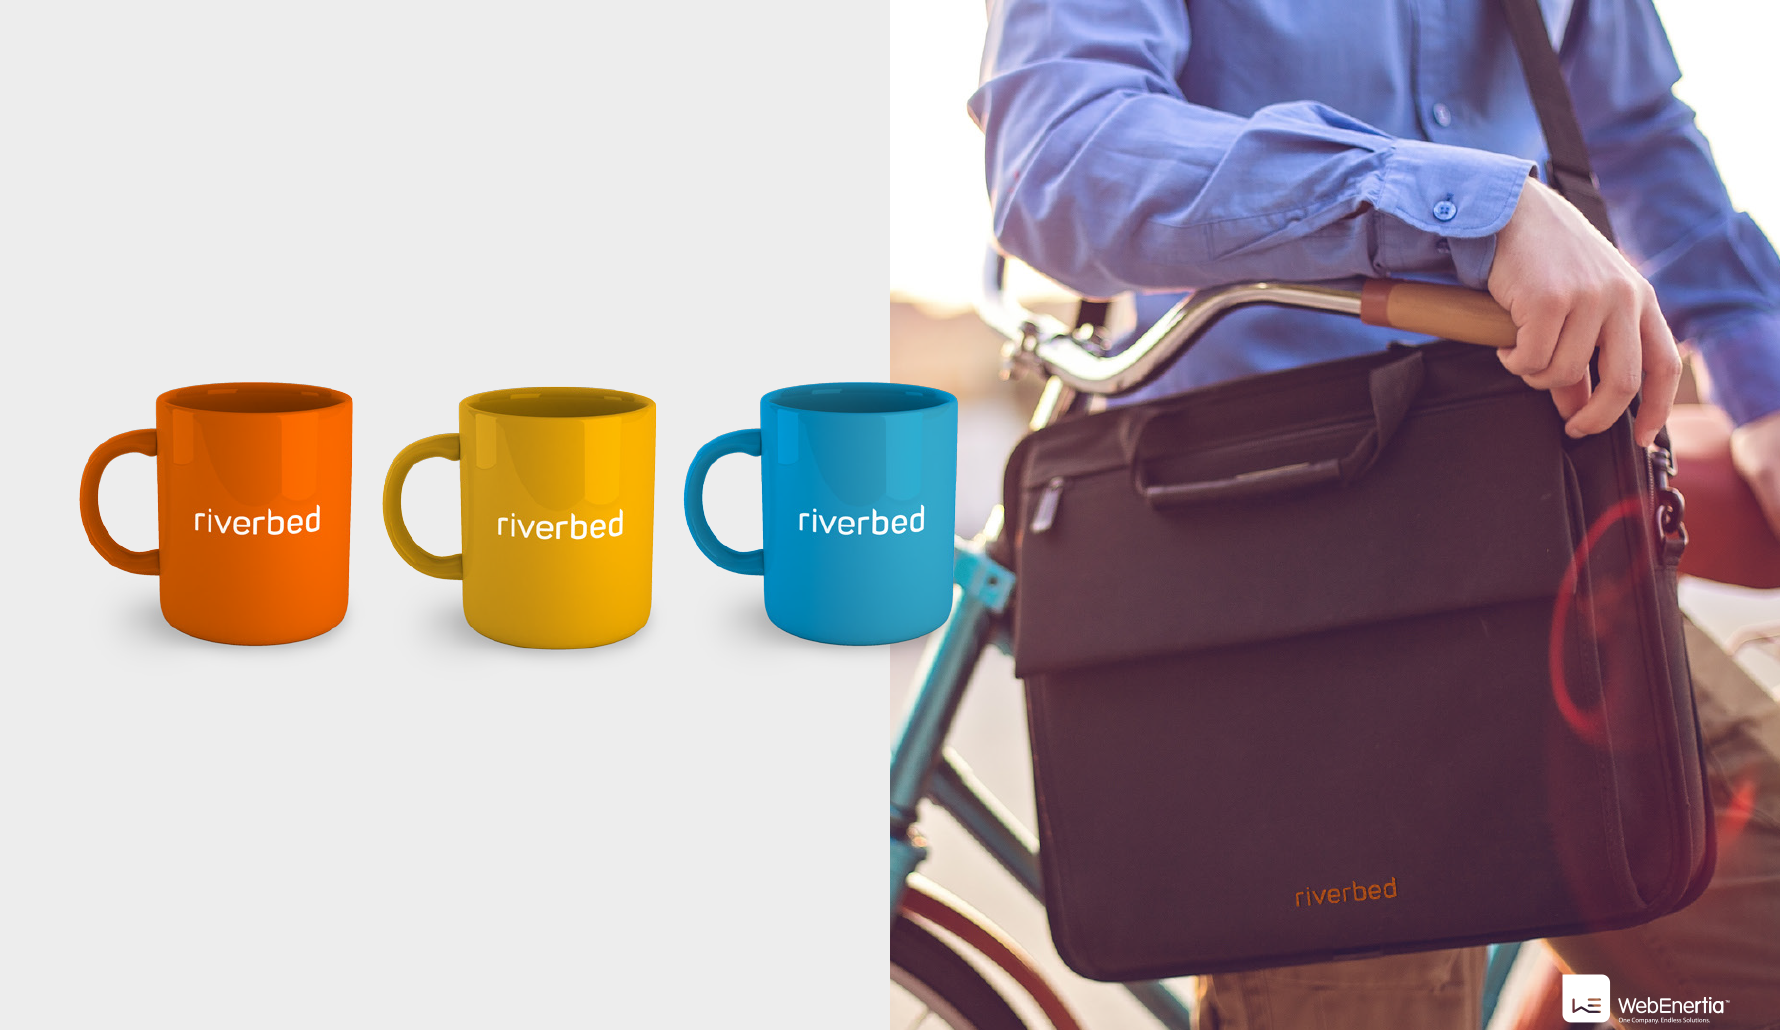 Riverbed Logo Redesign coffee mugs and laptop bag